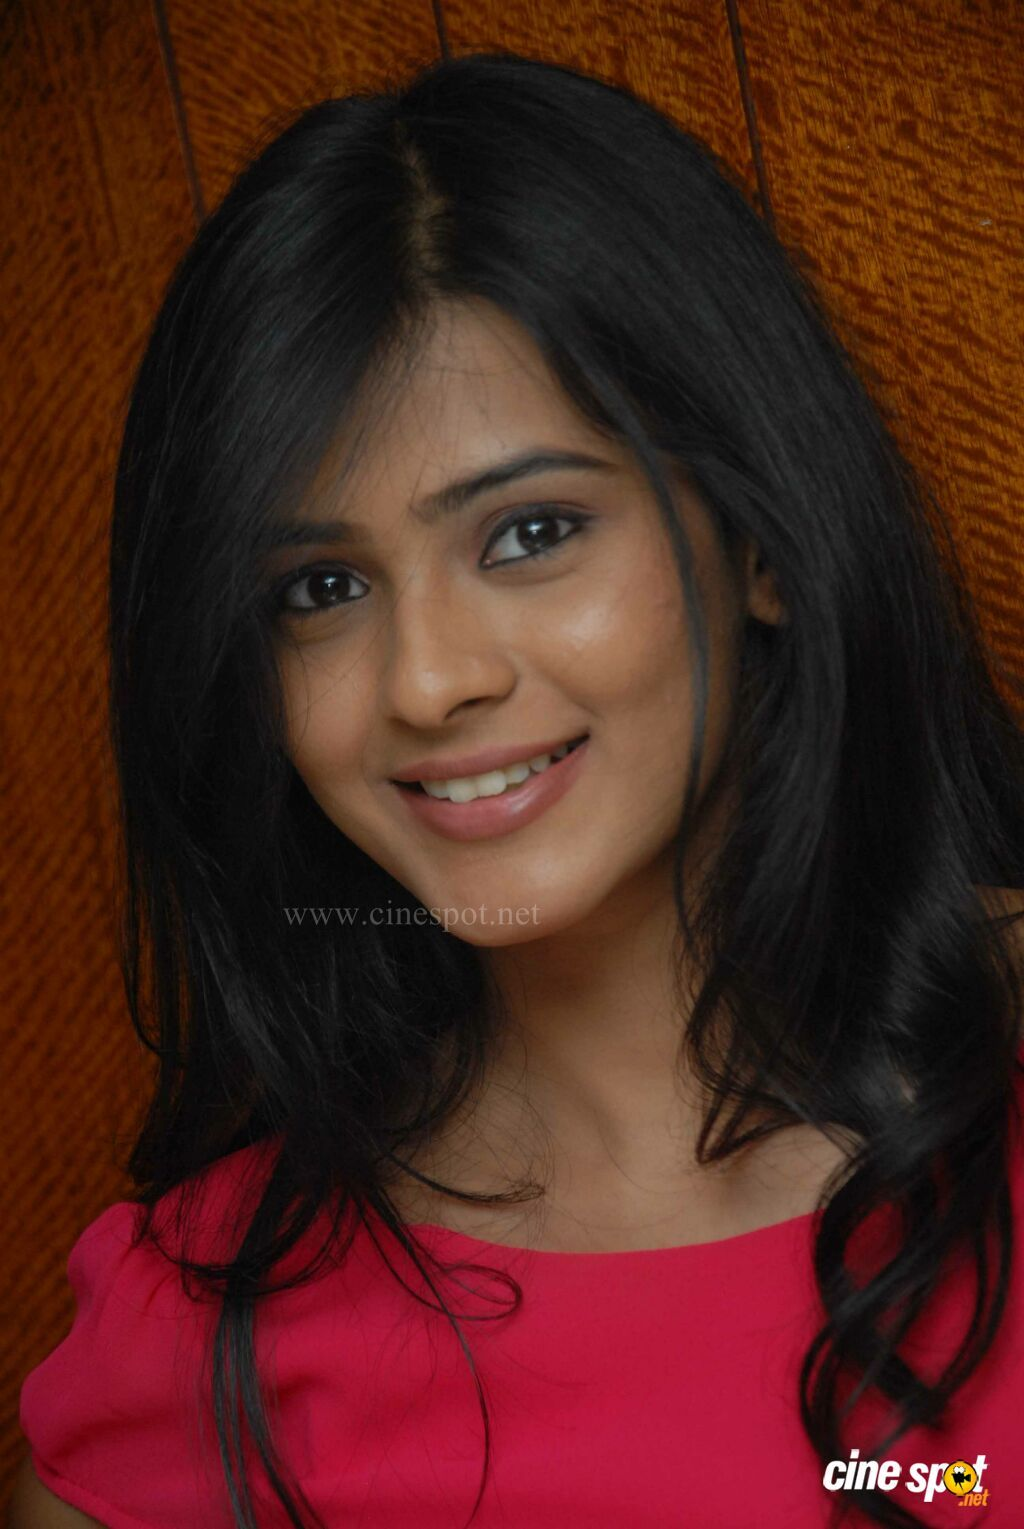 raksha kannada actress photos | wallpapers | pinterest | actress